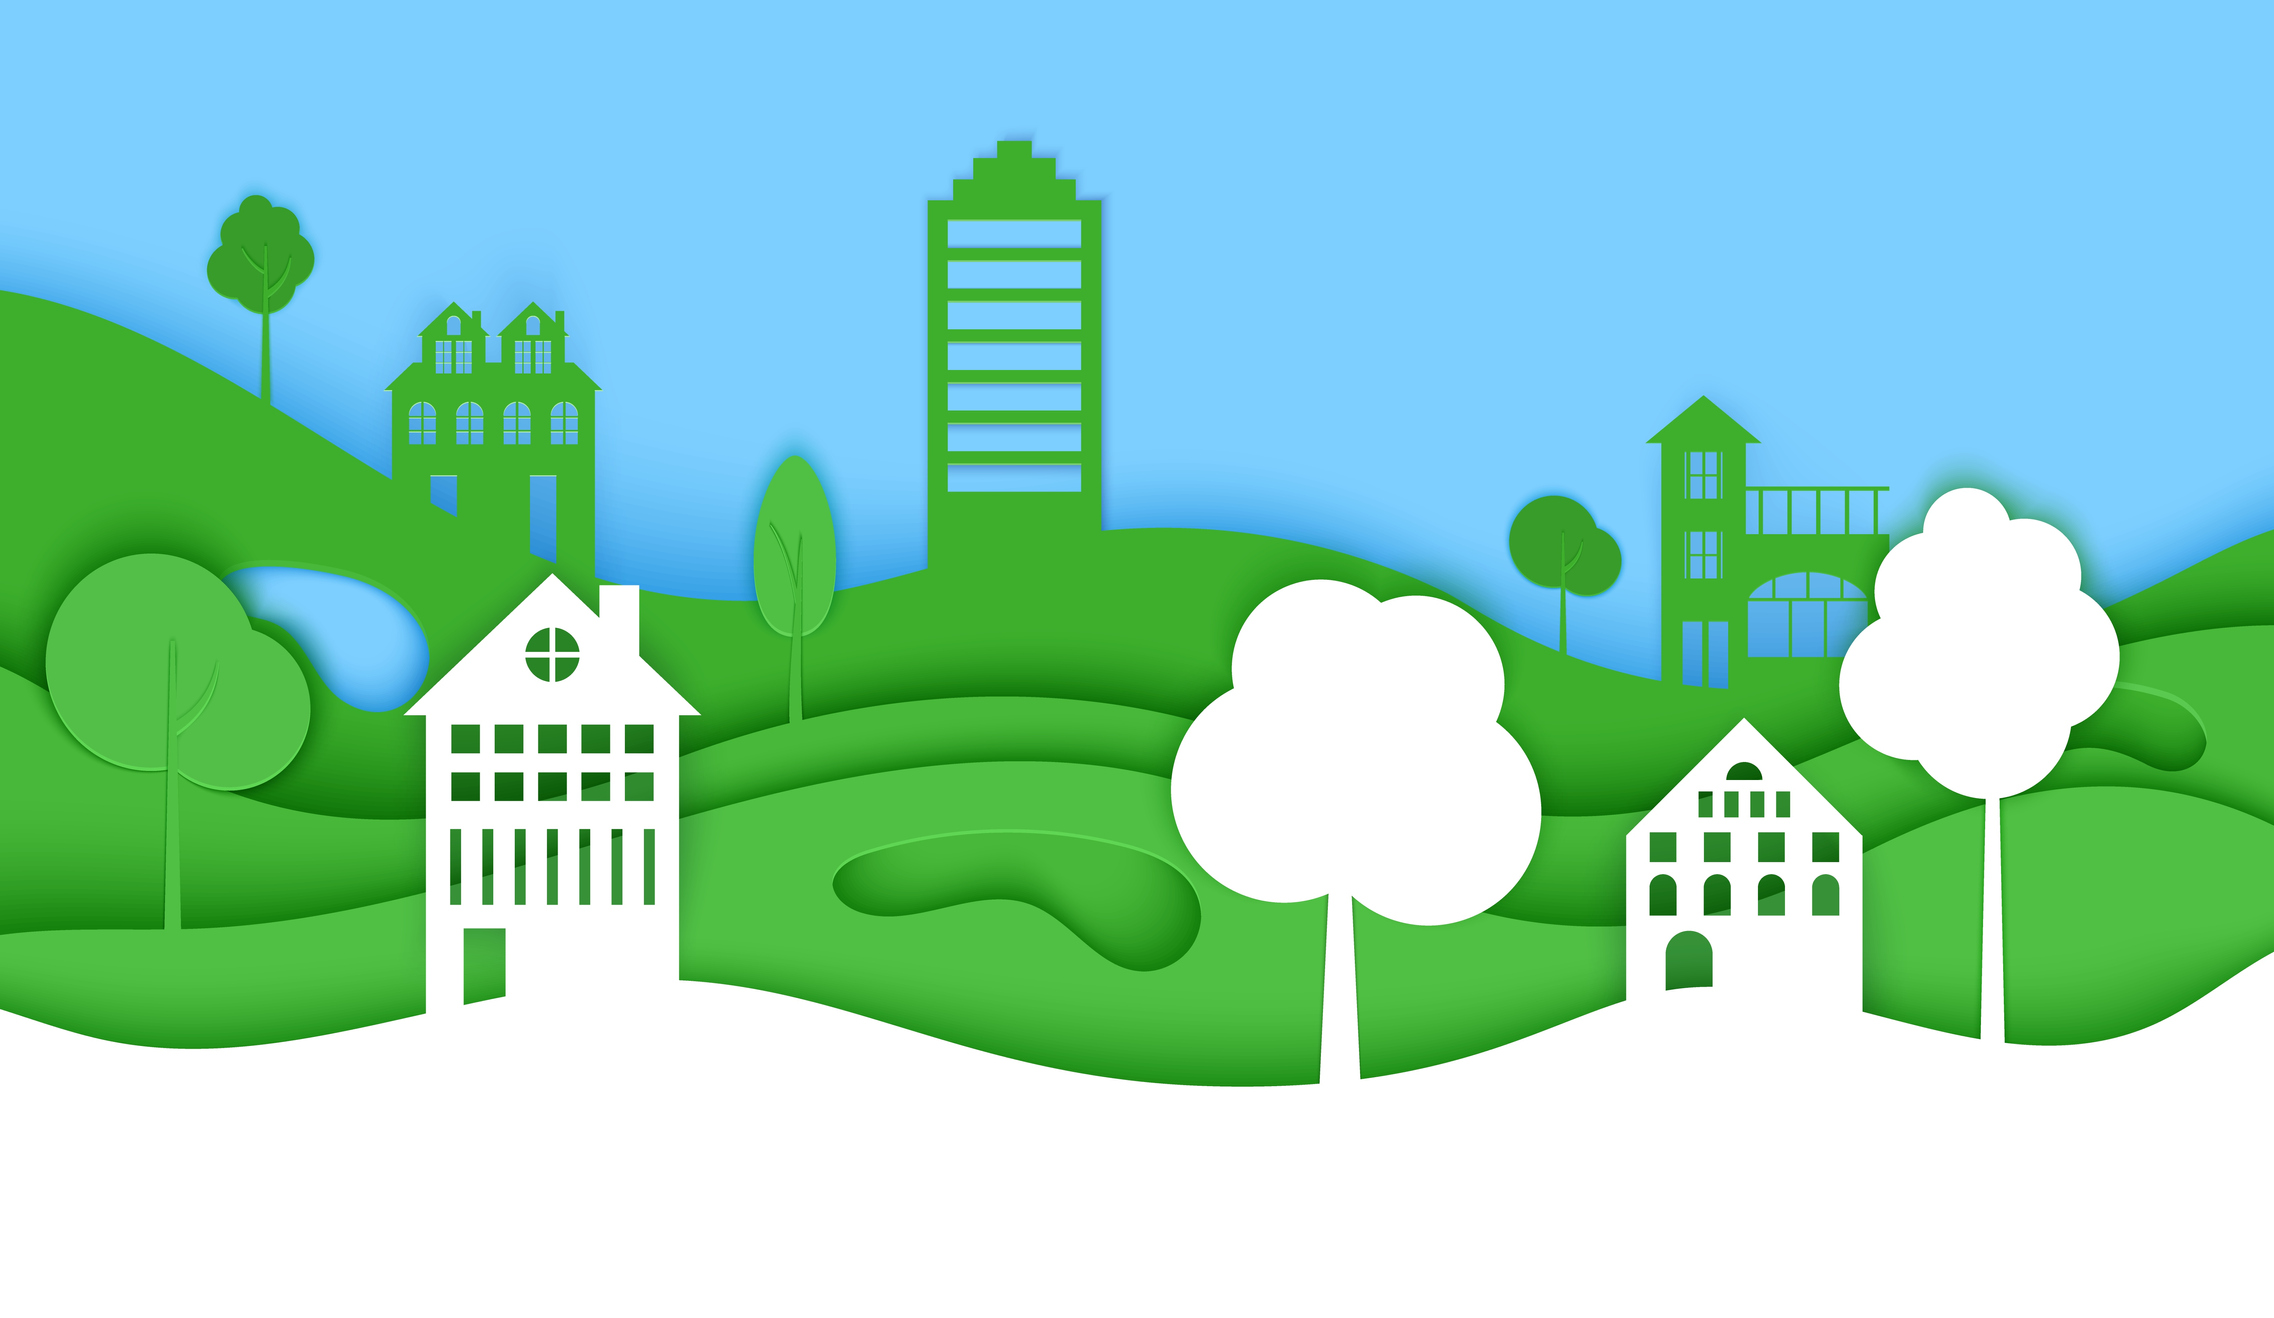 Cutout paper trees and building green wave and blue sky. Template in cut paper style for save the Earth posters, city ecology brochures